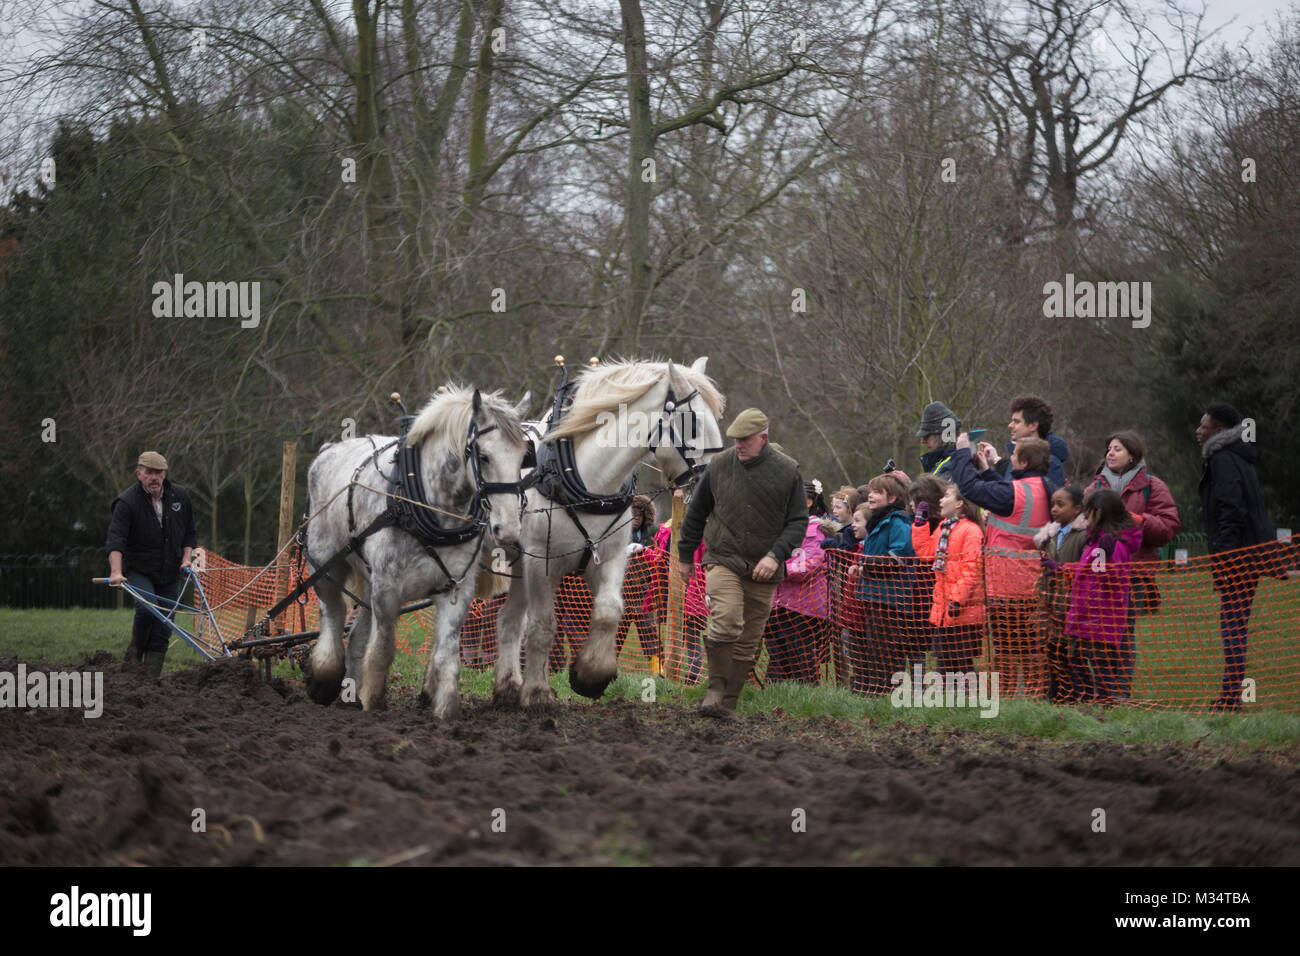 London UK. 9th Feb 2018. Local schoolchildren watch Irish ploughman Tom Nixon leading Shire horses Nobby and Heath - Stock Image